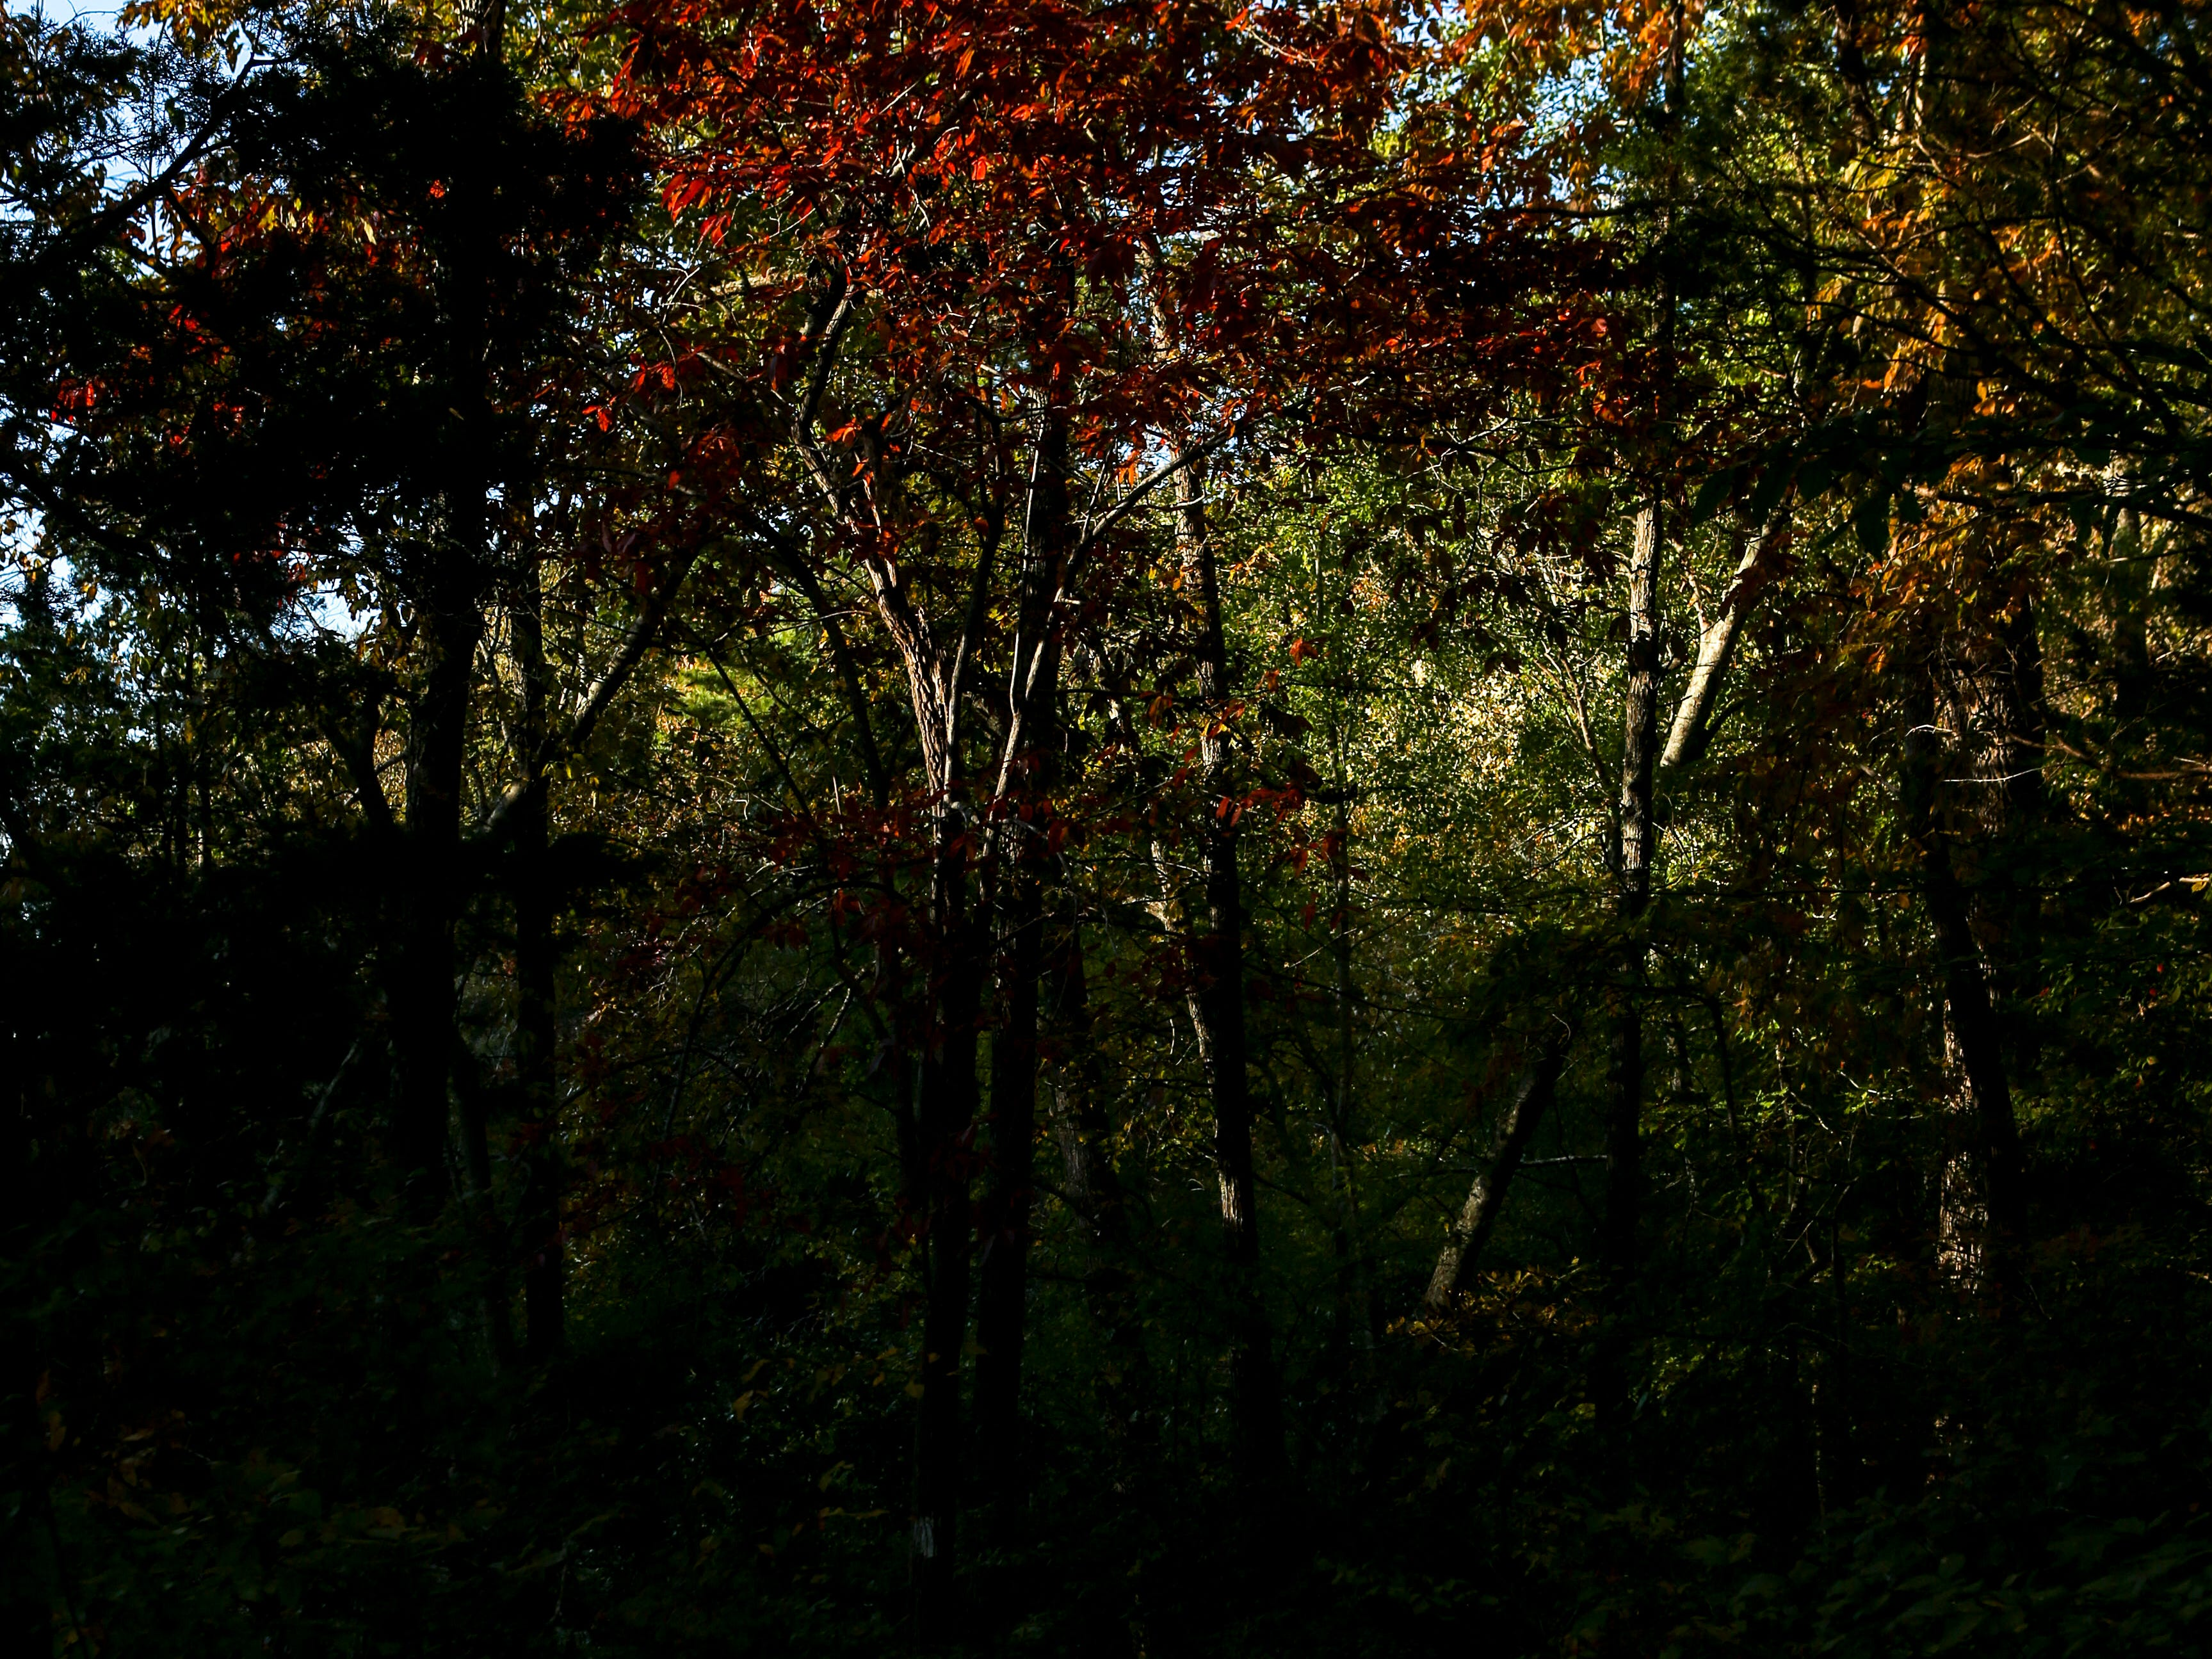 Green leaves surrender to shades of red and yellow late into Fall at Cub Creek Lake in Natchez Trace State Park, Tenn., on Sunday, Oct. 28, 2018.